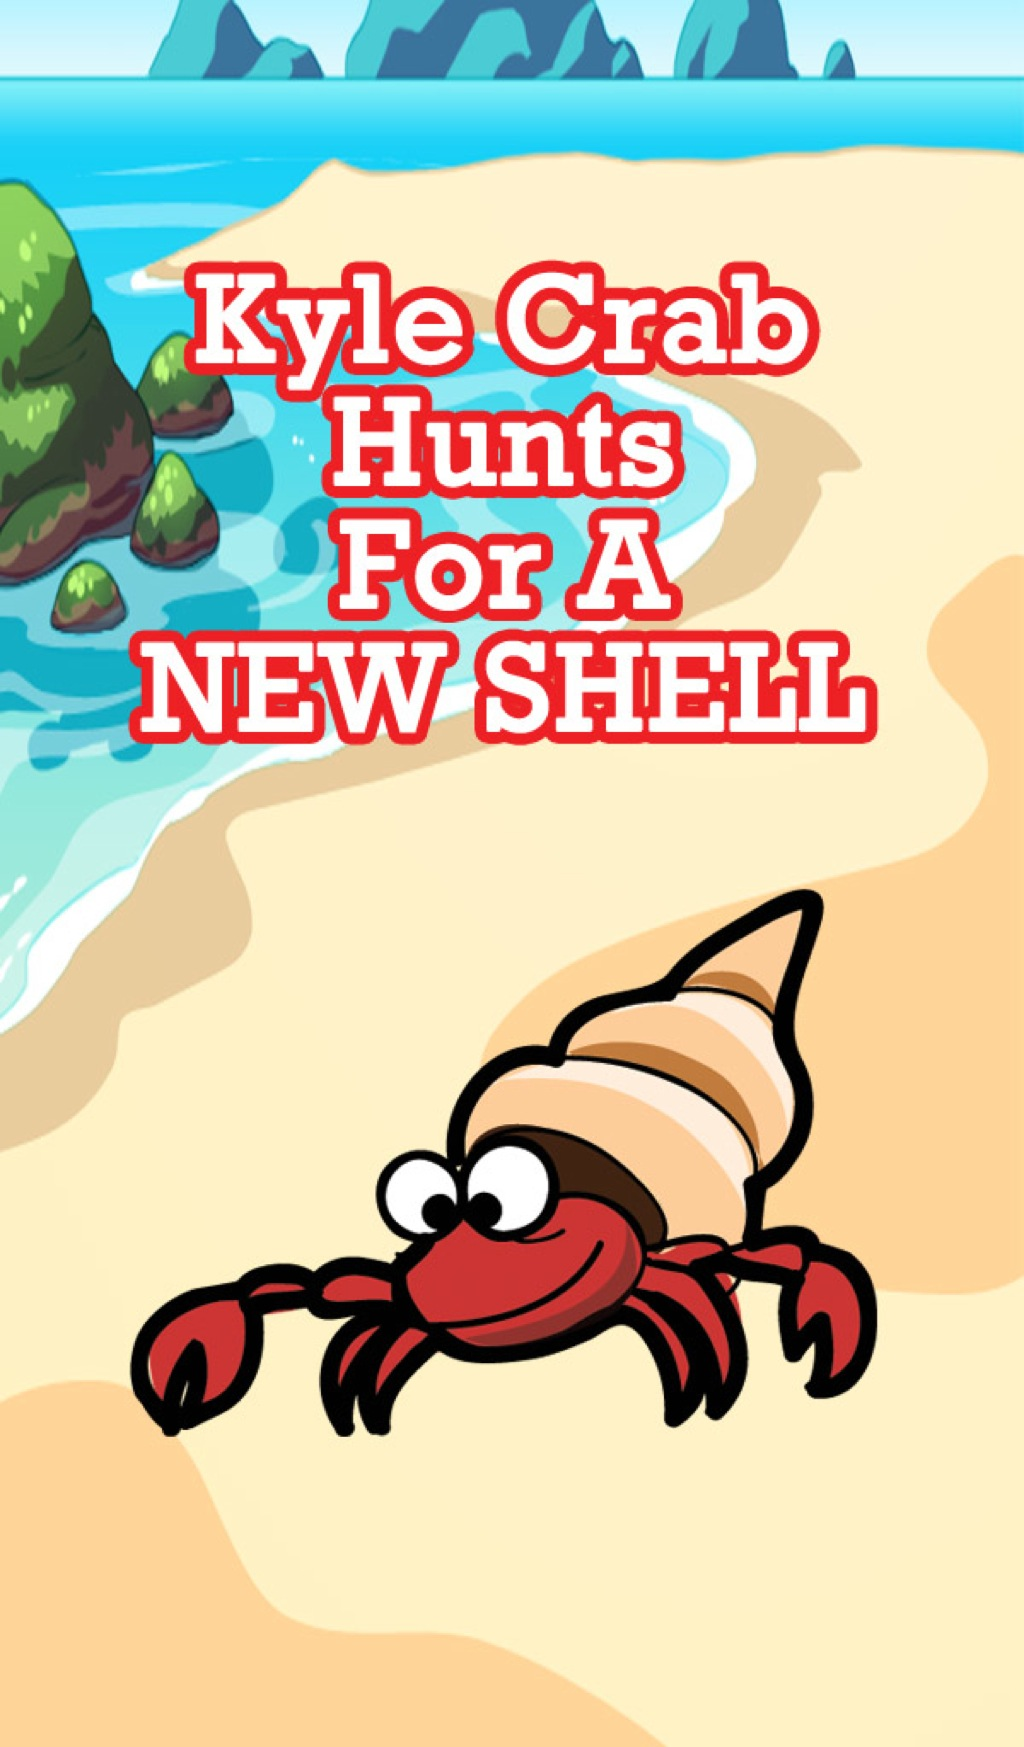 Kyle Crab Hunts For a New Shell (eBook)